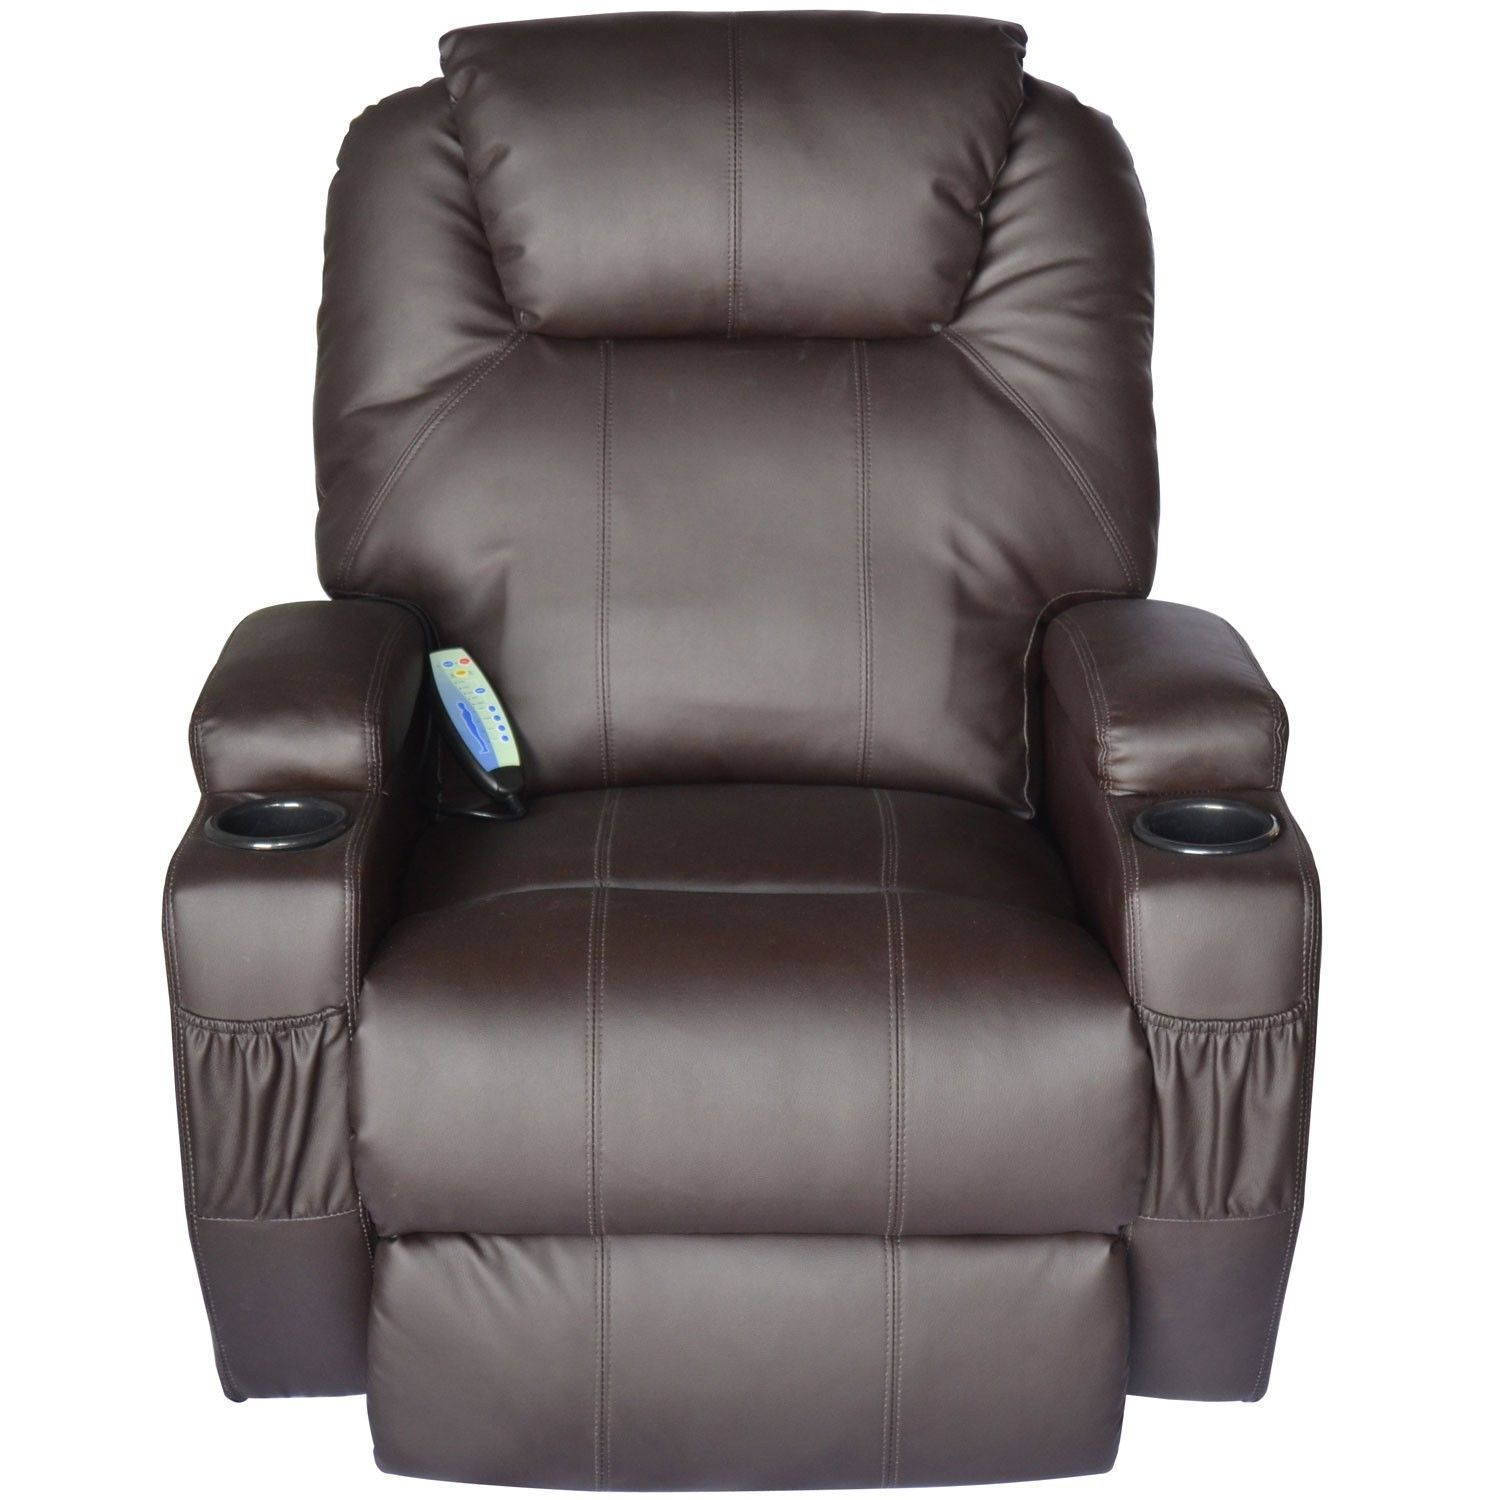 zoom ocean world headrests sanza recliner sofa h of leather w with bv seater blue power